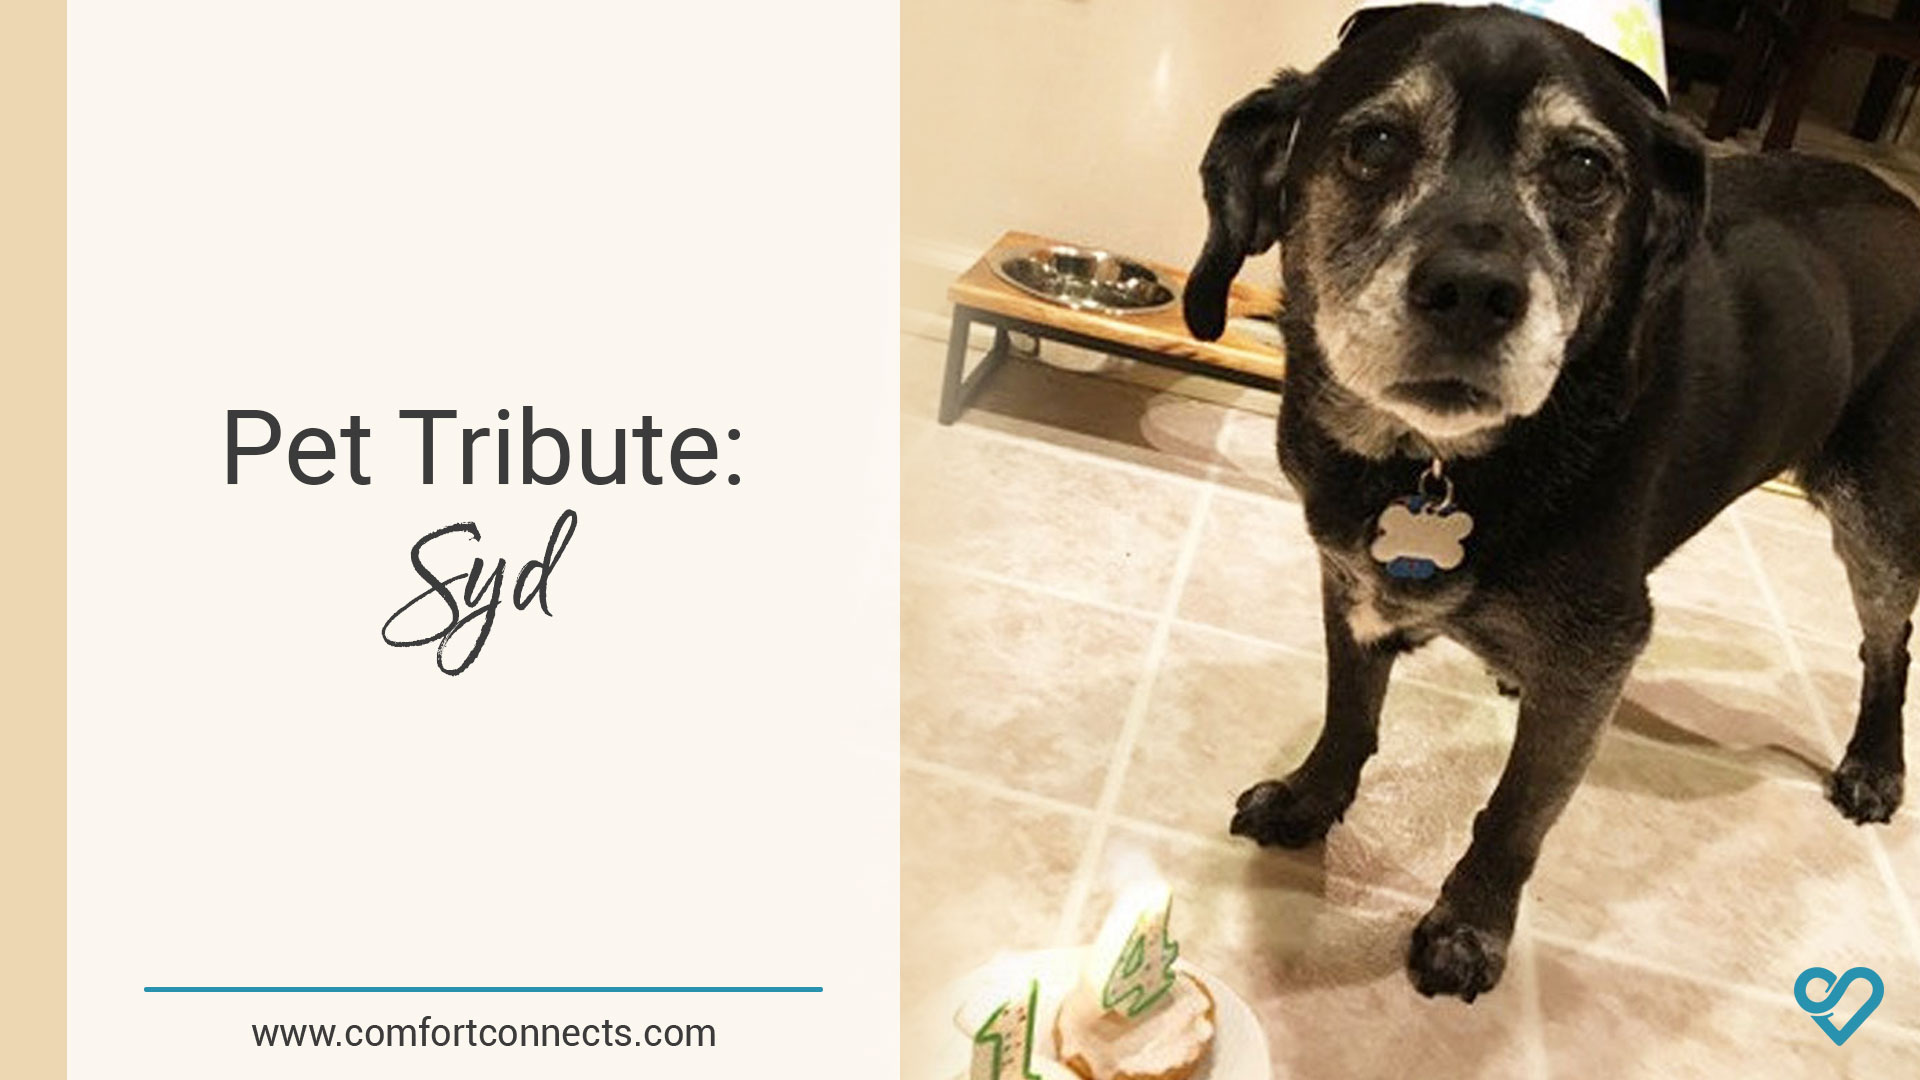 Pet Tribute: Syd